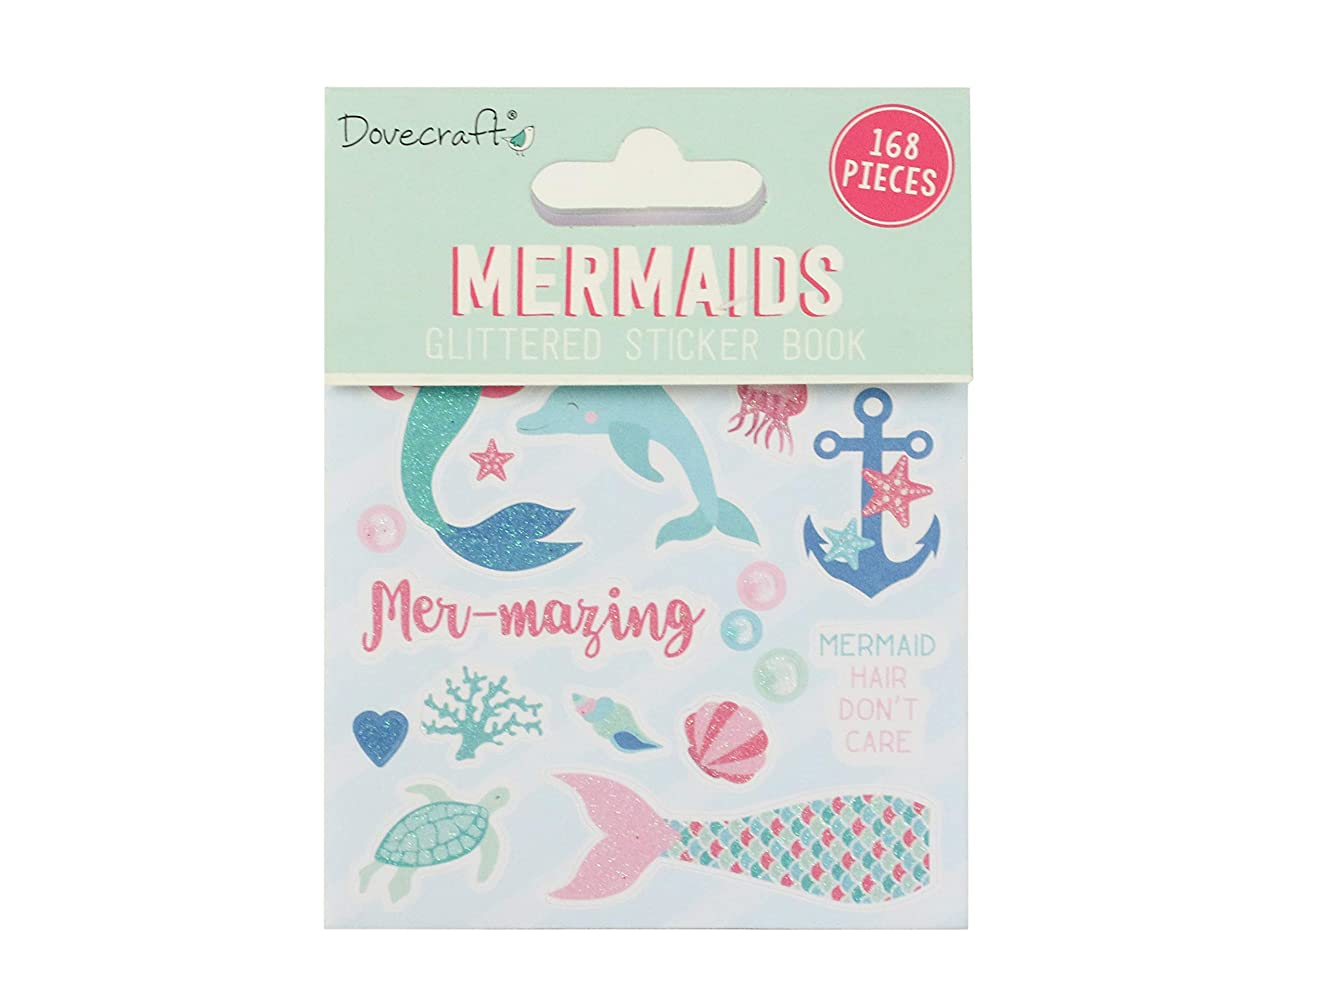 Dovecraft Book-Mermaids-168 Stickers-Glitter Designs-for Crafts, Stationery, Journaling, Paper, Multicolour, One Size